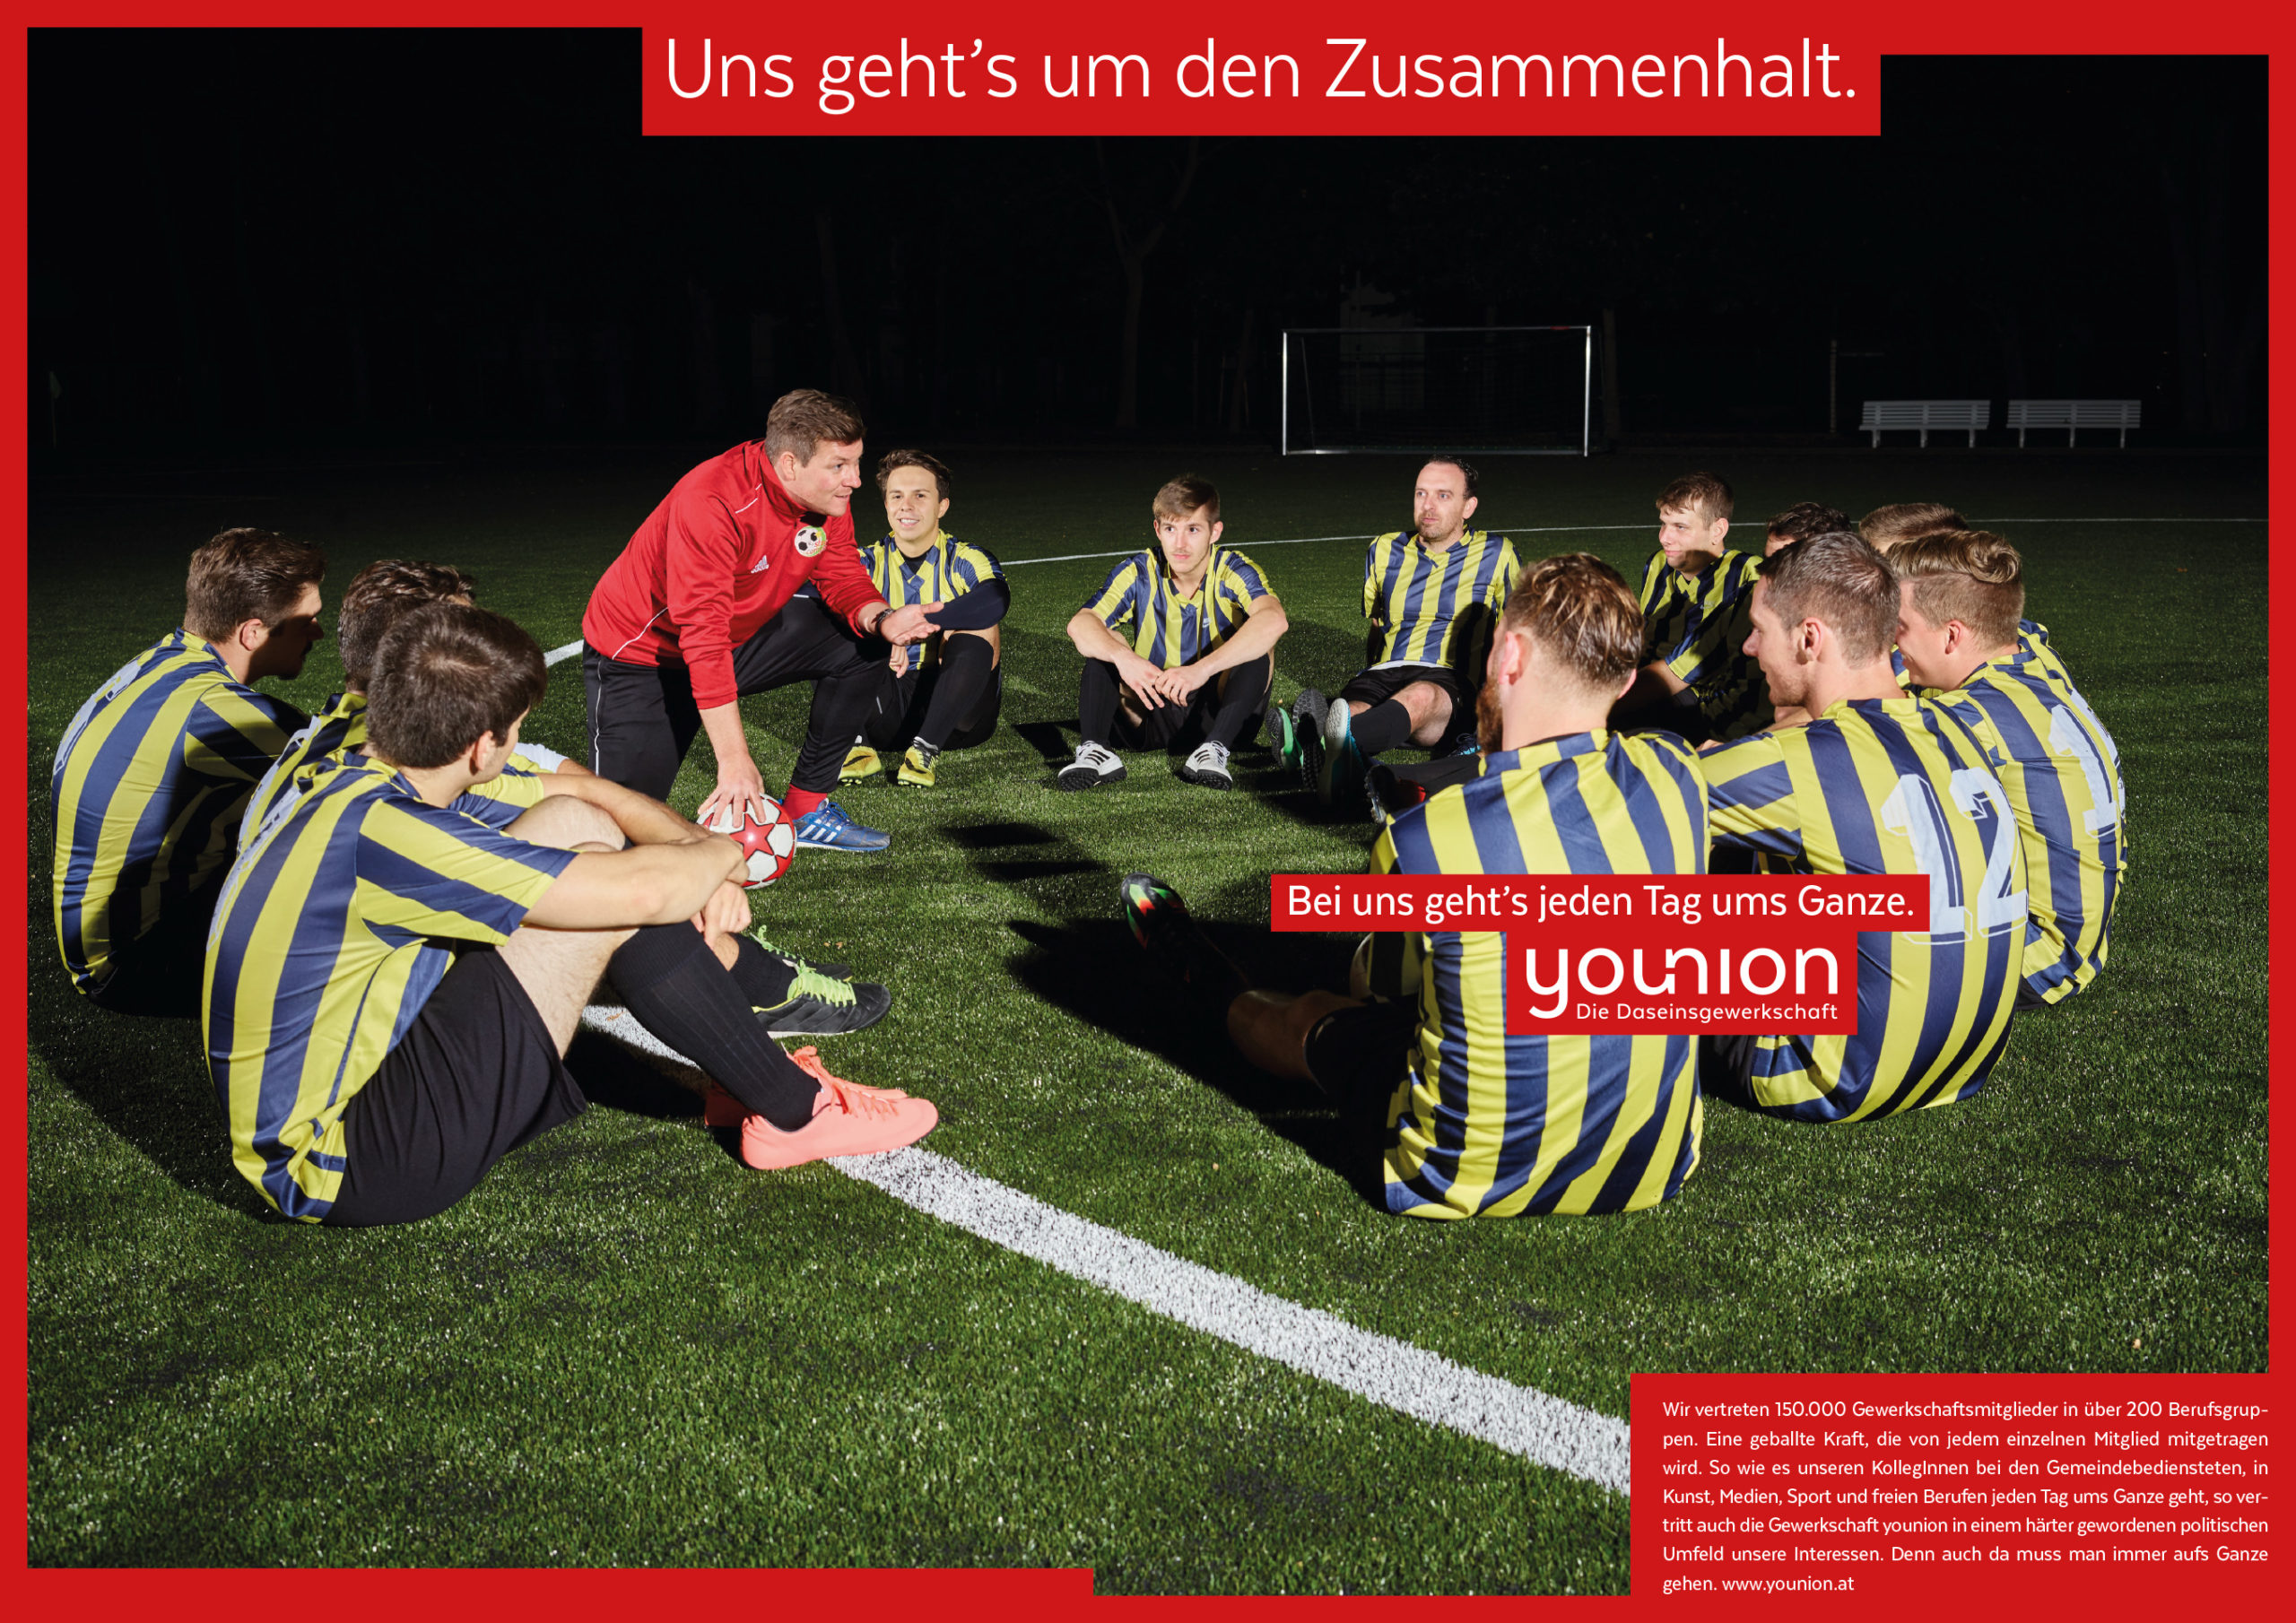 Younion-Kampagne-Sujet-8-scaled.jpg